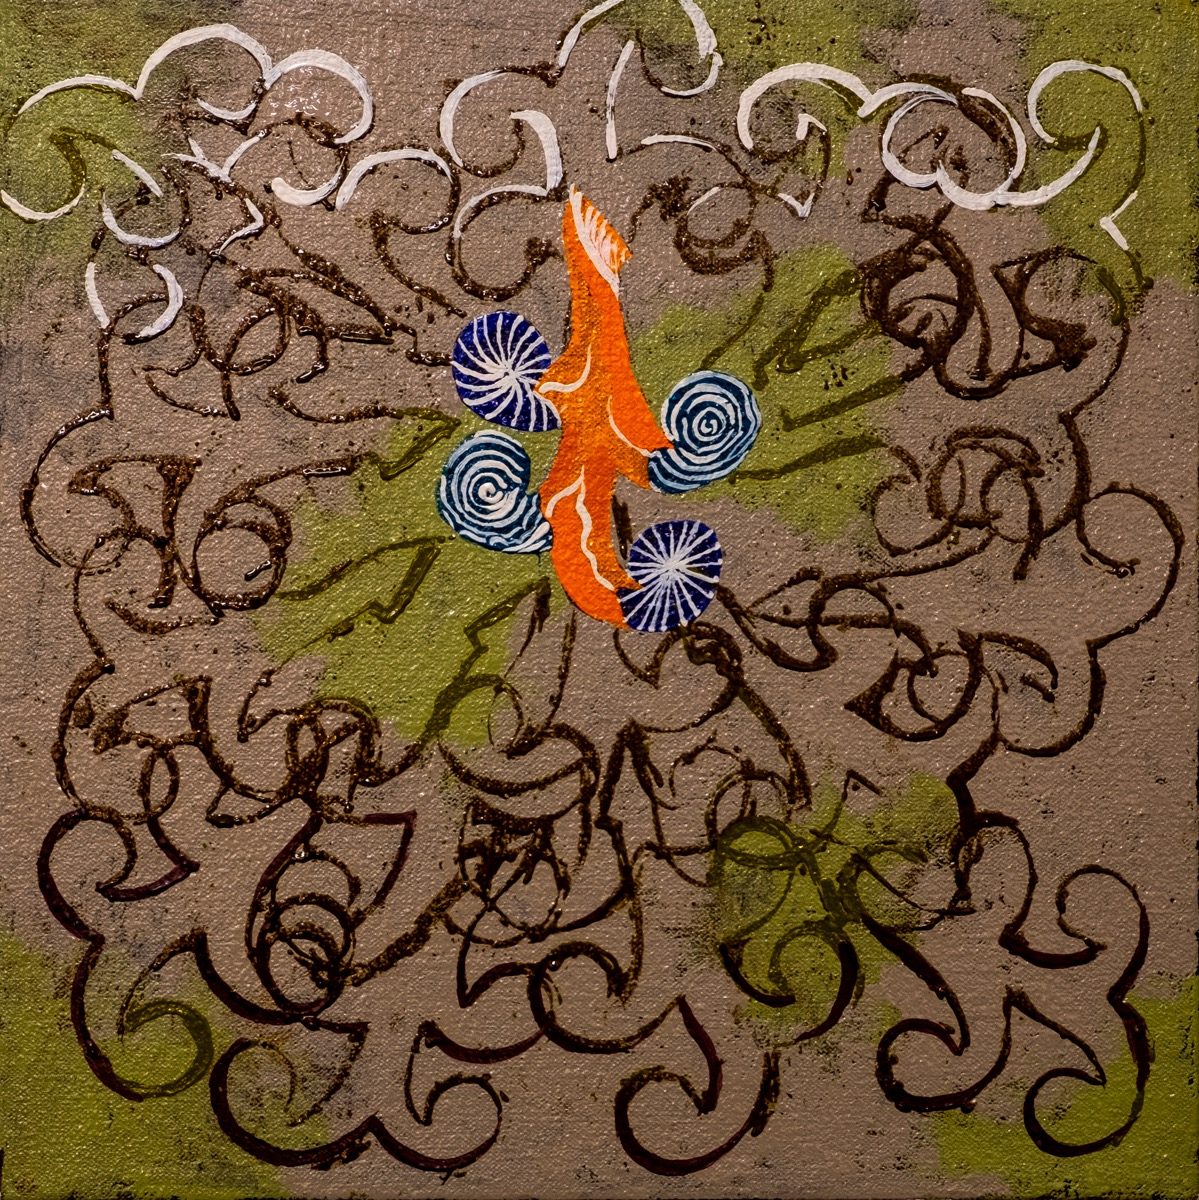 "Small Creature Series 12"" x 12"" Oil on Canvas REF # 2019/11"